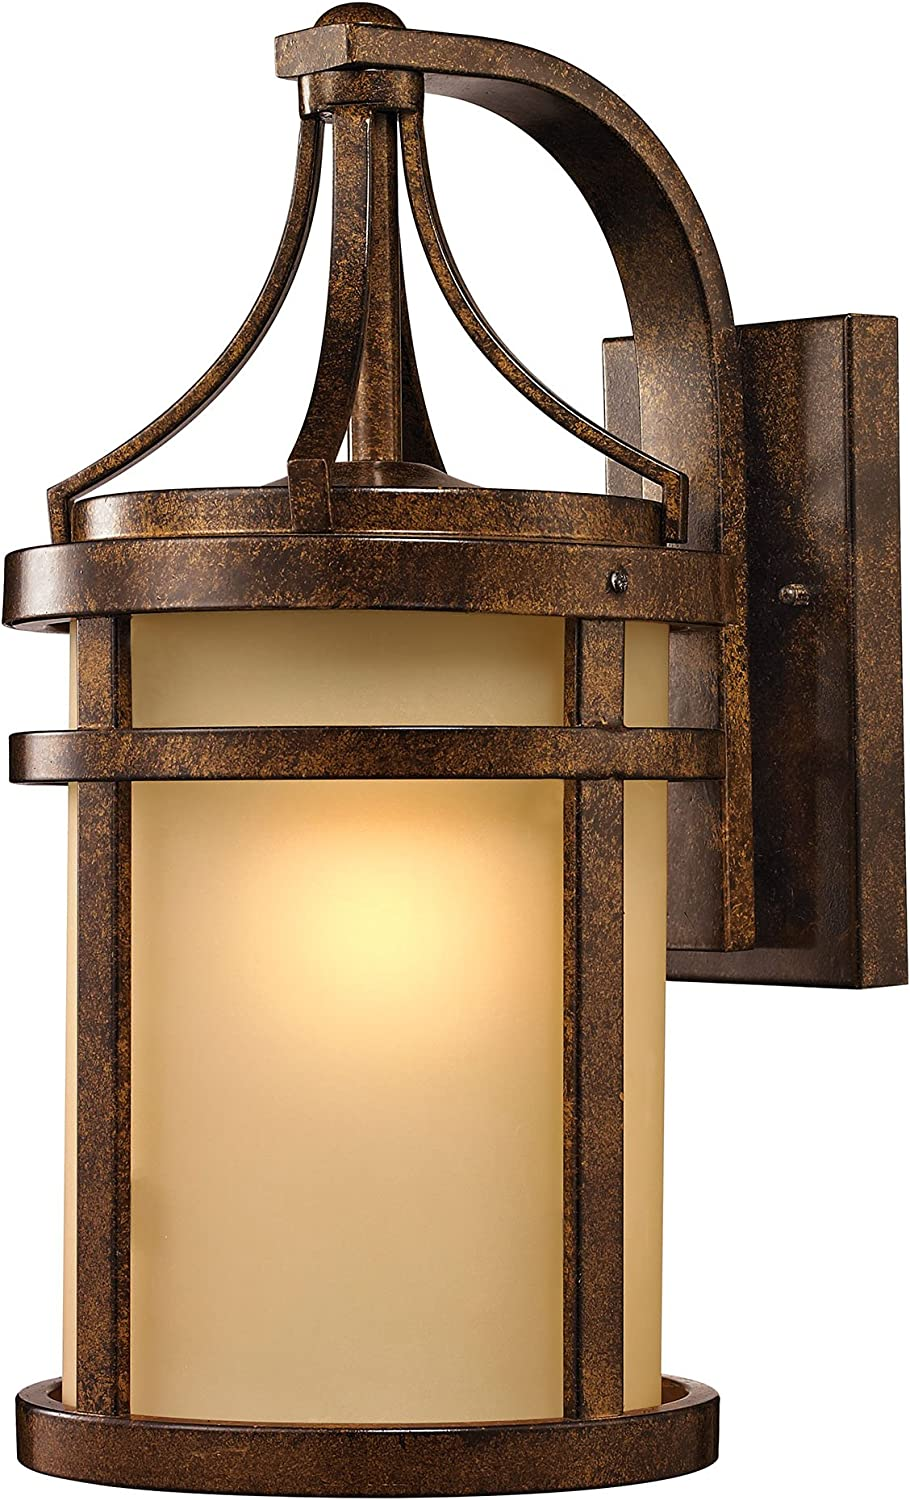 ELK Lighting 45097/1 Winona Collection 1 Light Outdoor Sconce, 18 x 9 x 11